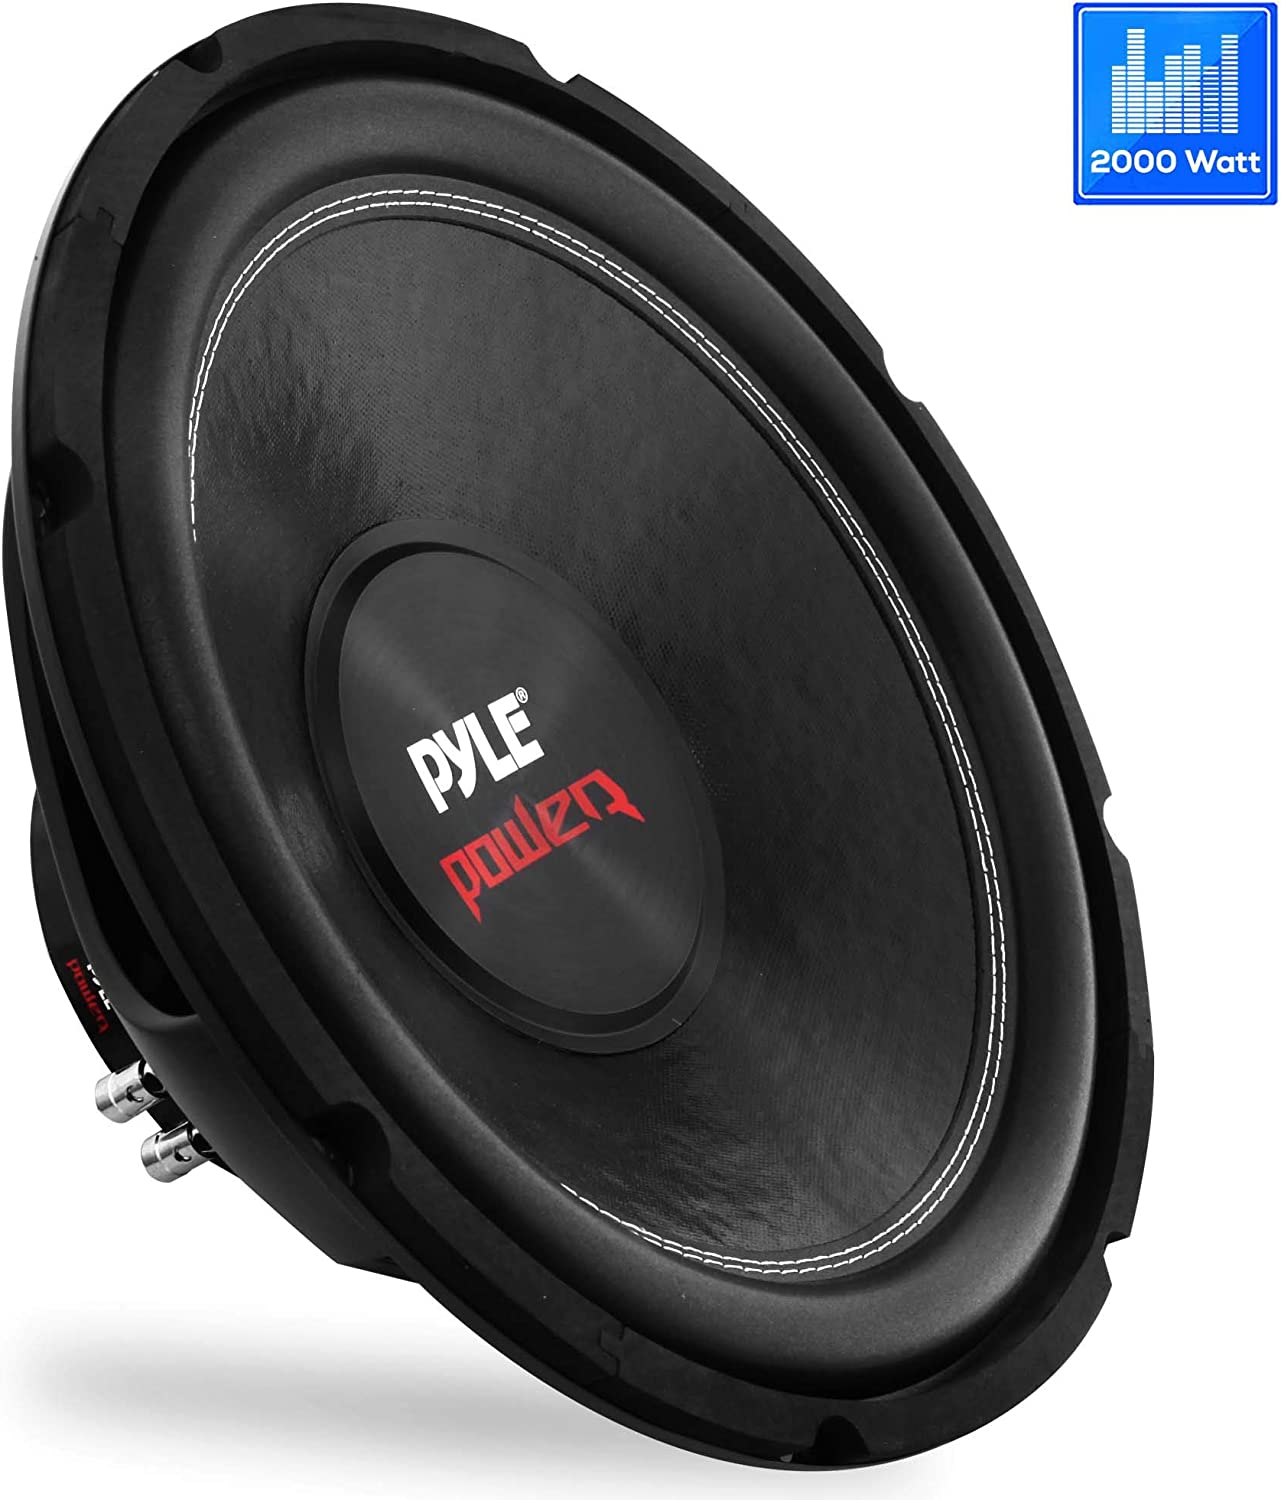 "PYLE 6/"" 600 Watt Dual Voice Coil 4 Ohm Subwoofer Power Series Speaker Stereo"